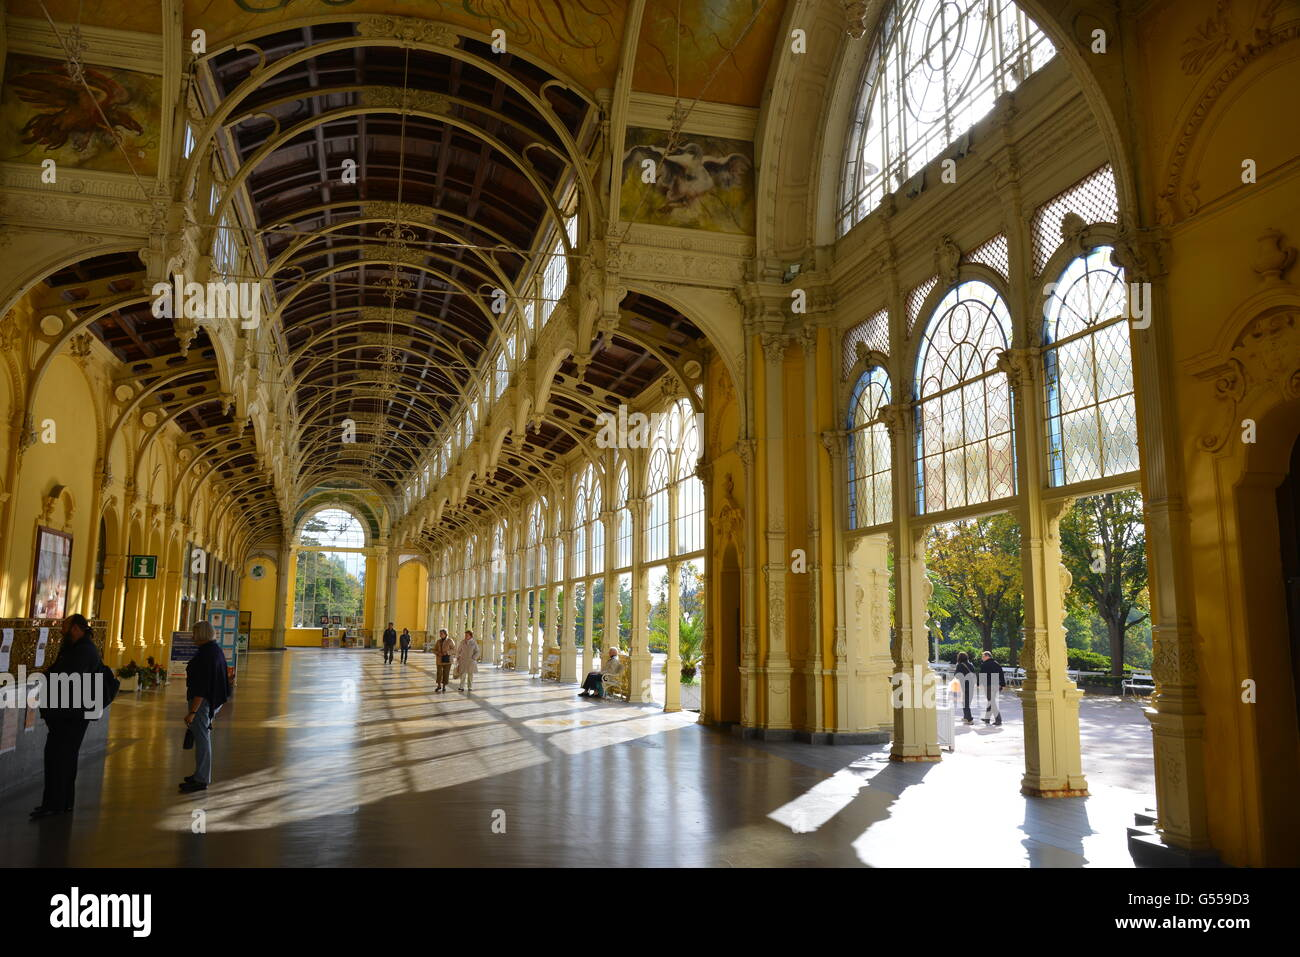 Interior view of the new Baroque Colonnade in Marienbad / Marianske Lazne, that  was built between 1888 and 1889. - Stock Image